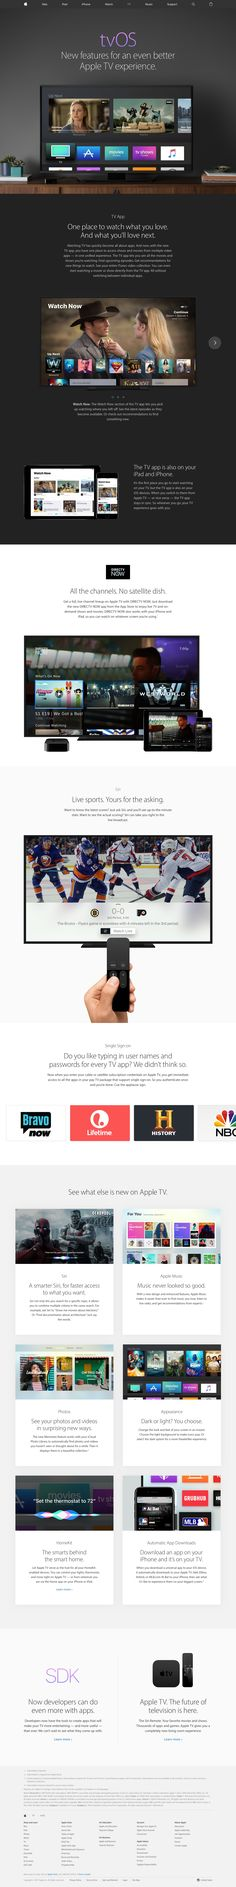 tvOS - Apple - One place to watch what you love